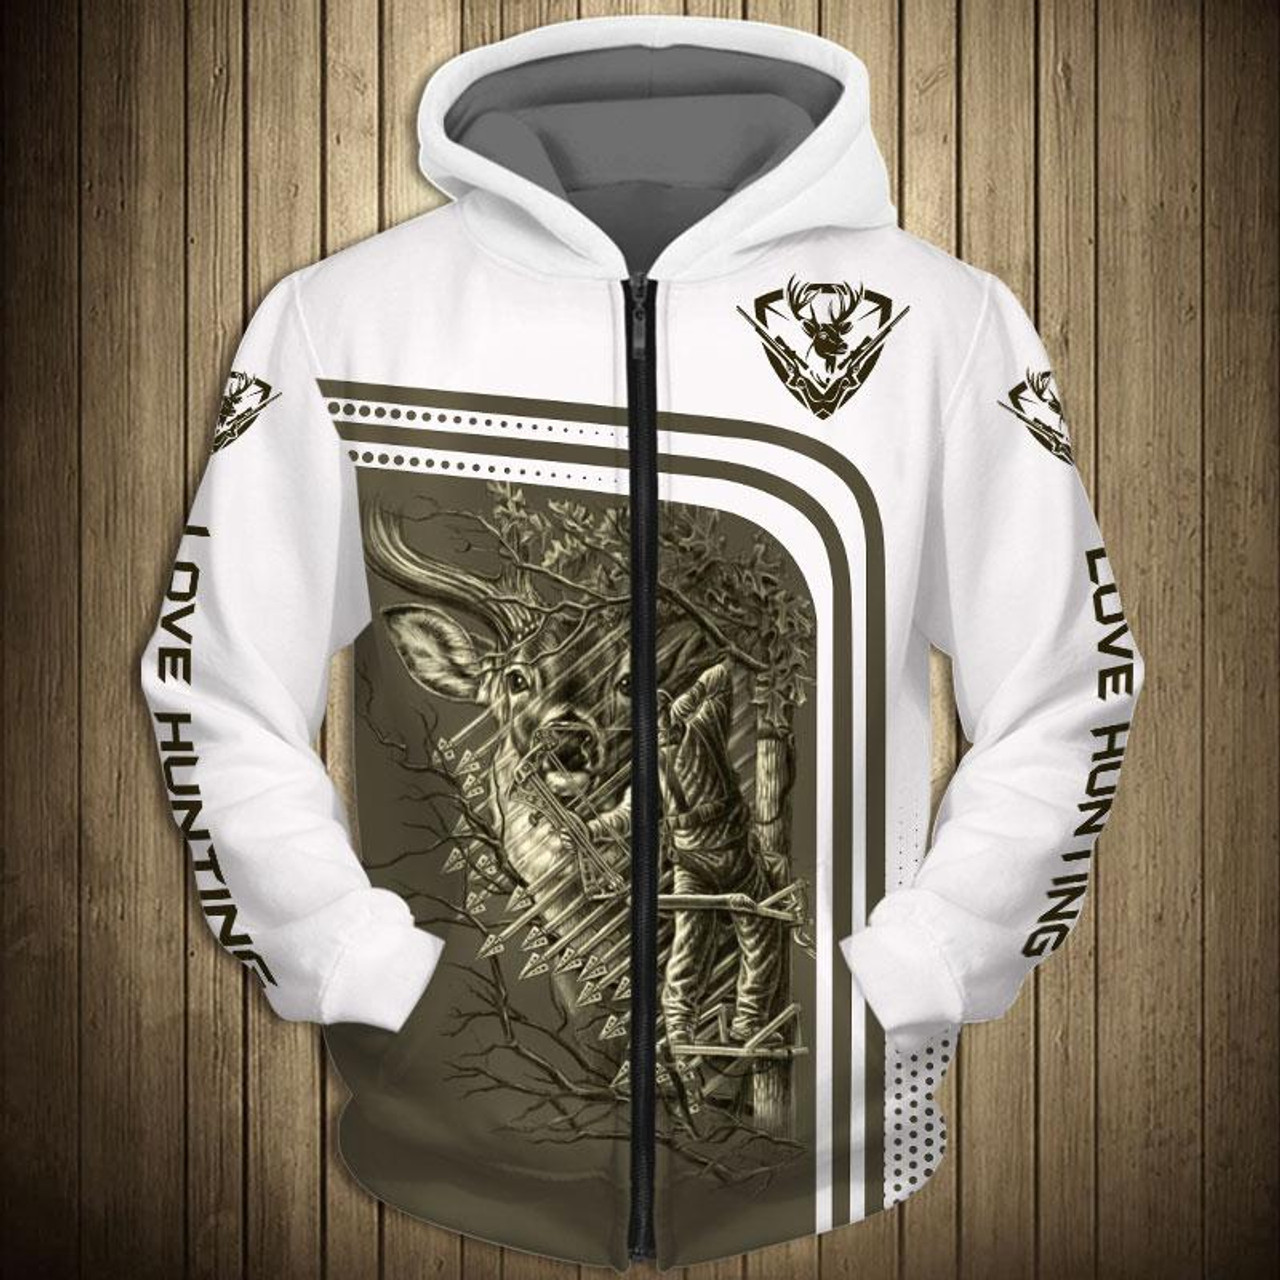 4f06c6c3 **(OFFICIAL-ARCHERY-BUCK-HUNTING-ZIPPERED-HOODIES/3-D-CUSTOM-DETAILED- GRAPHIC-PRINTED/DOUBLE-SIDED-ALL-OVER-PRINTED-DESIGN/LOVE-HUNTING-DOWN-SLEEVES  ...